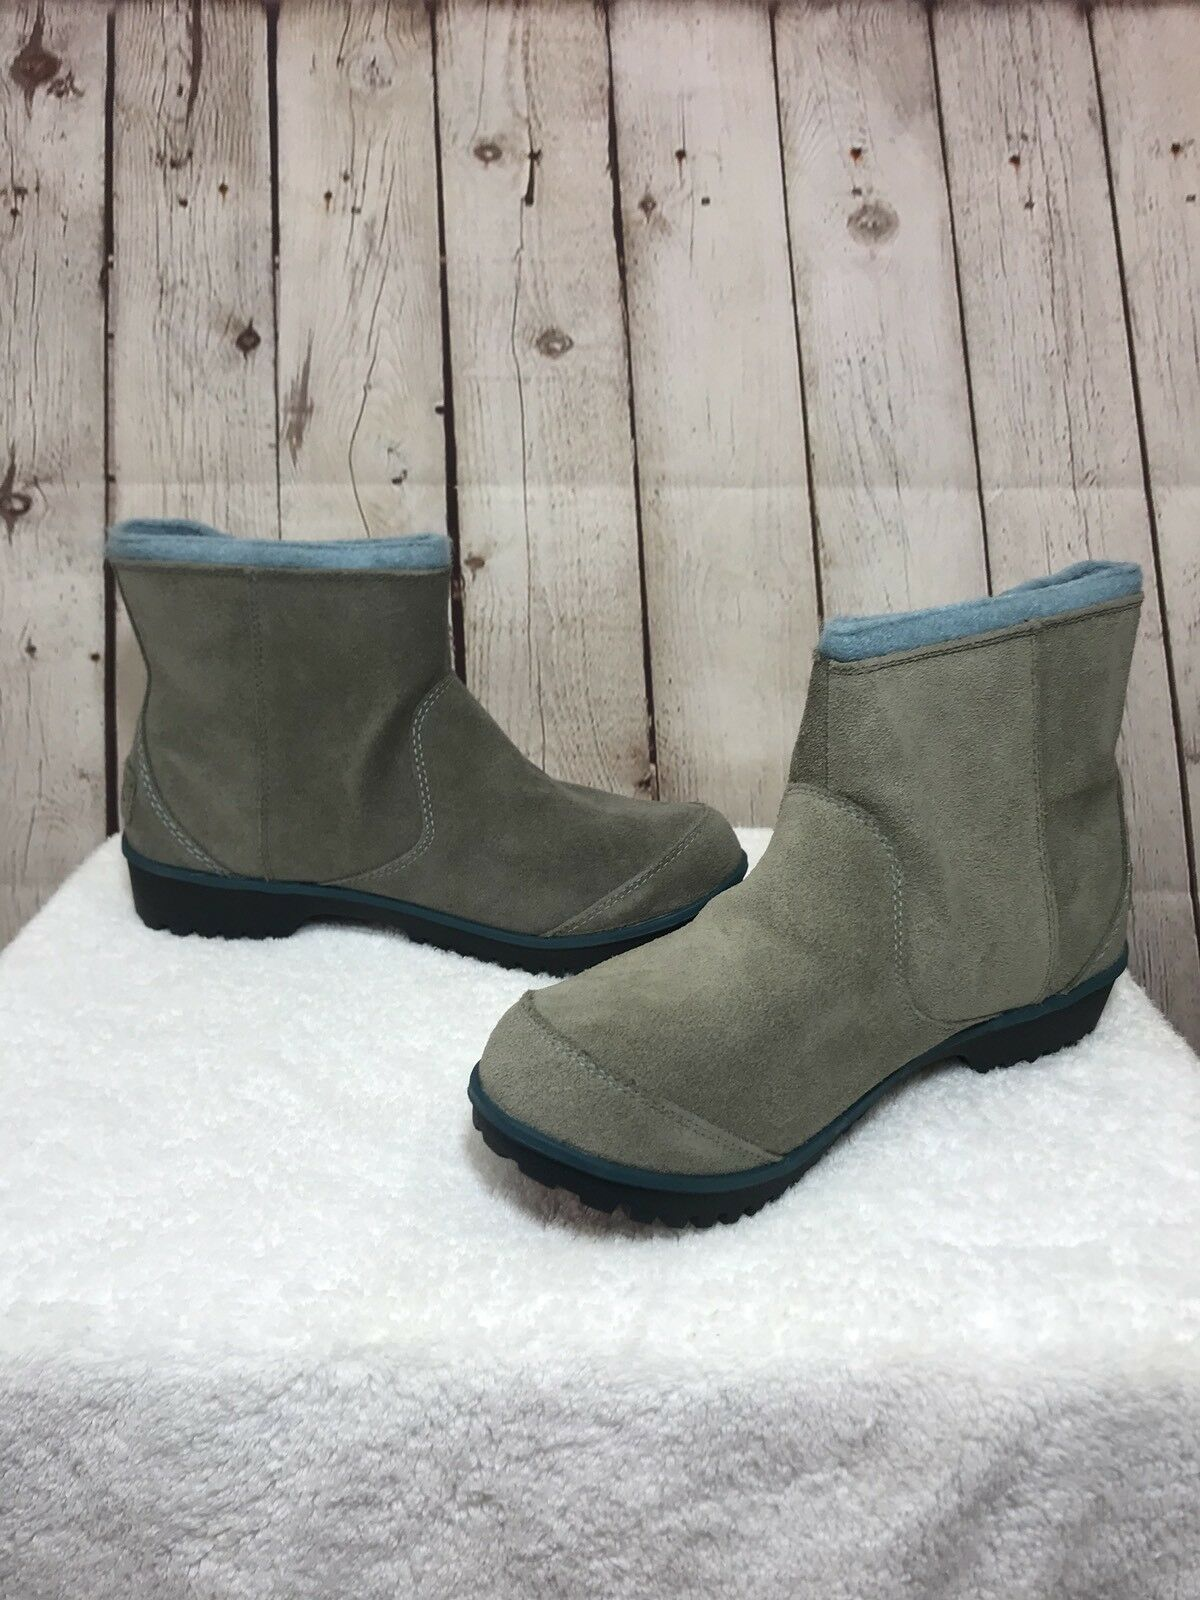 Sorel Meadow Waterproof Boot Stone Lined Mud Blue Gray Suede Lined Stone Ankle Boot Size 8 b7aec2